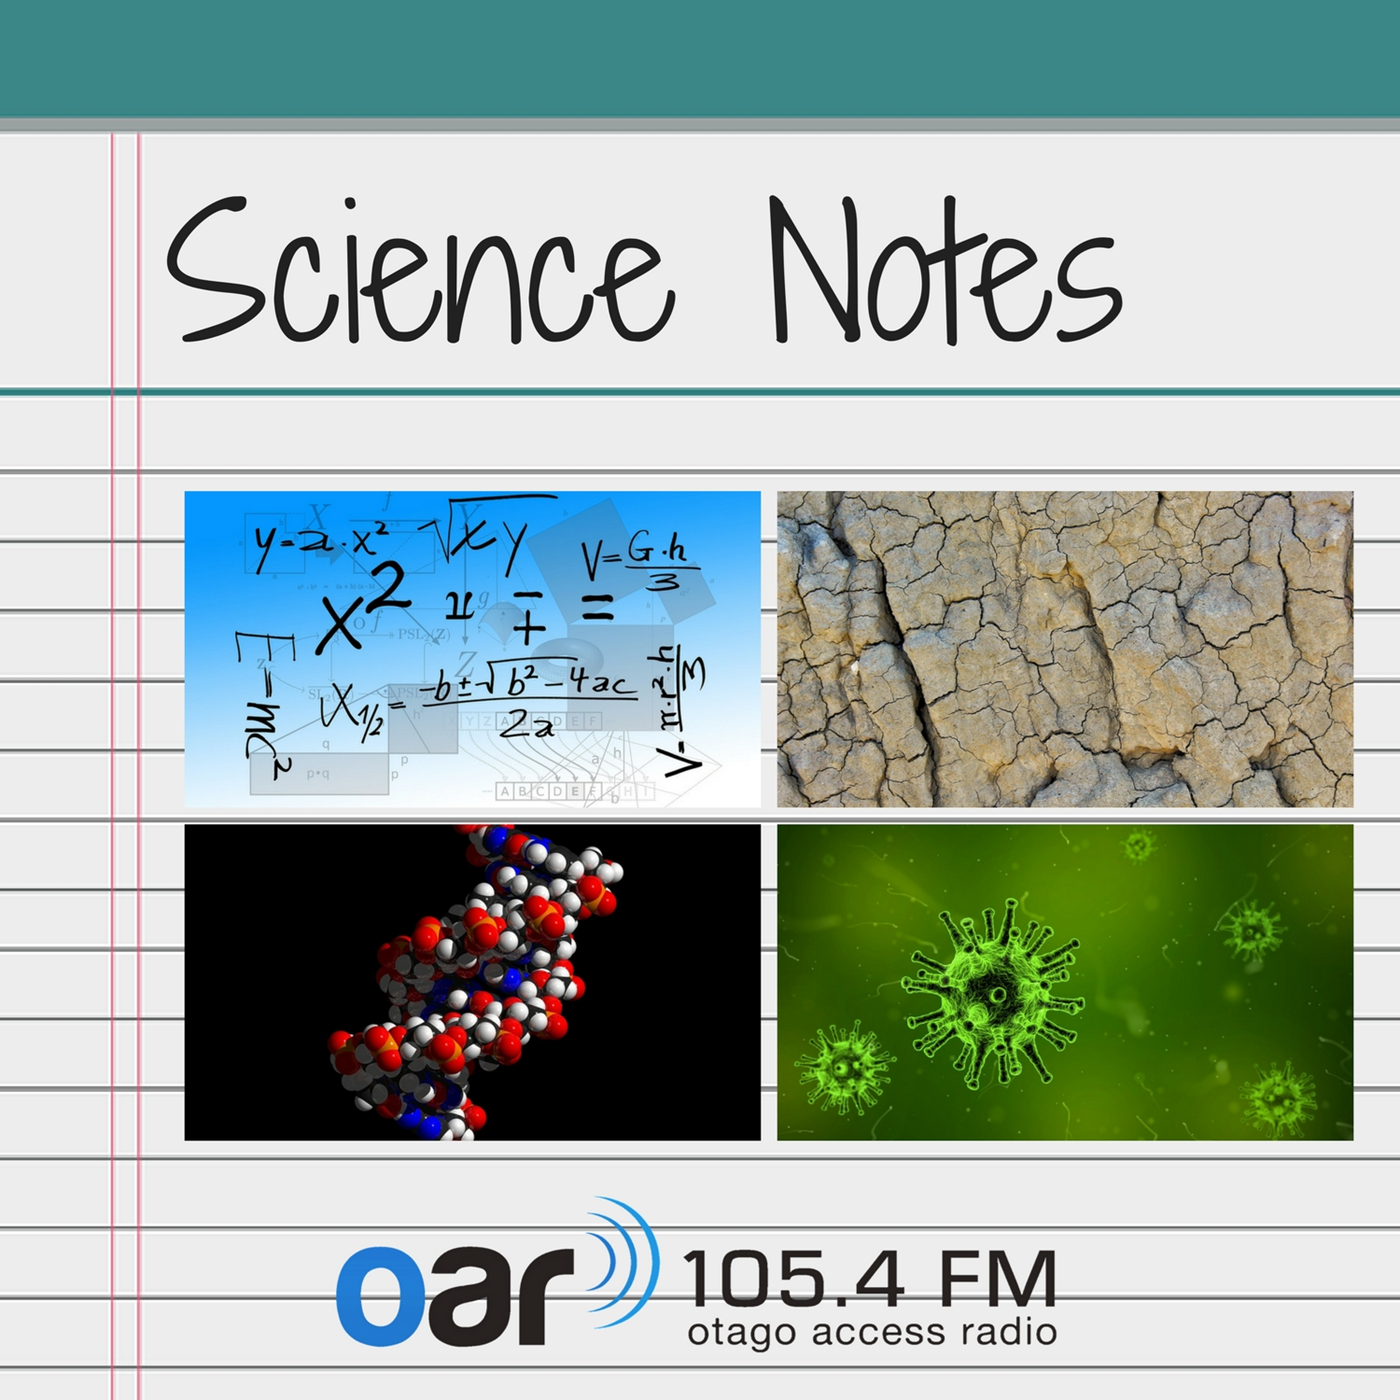 Science Notes - 20-02-2020 - Carnivorous Plants - Taylor Davies-Colley